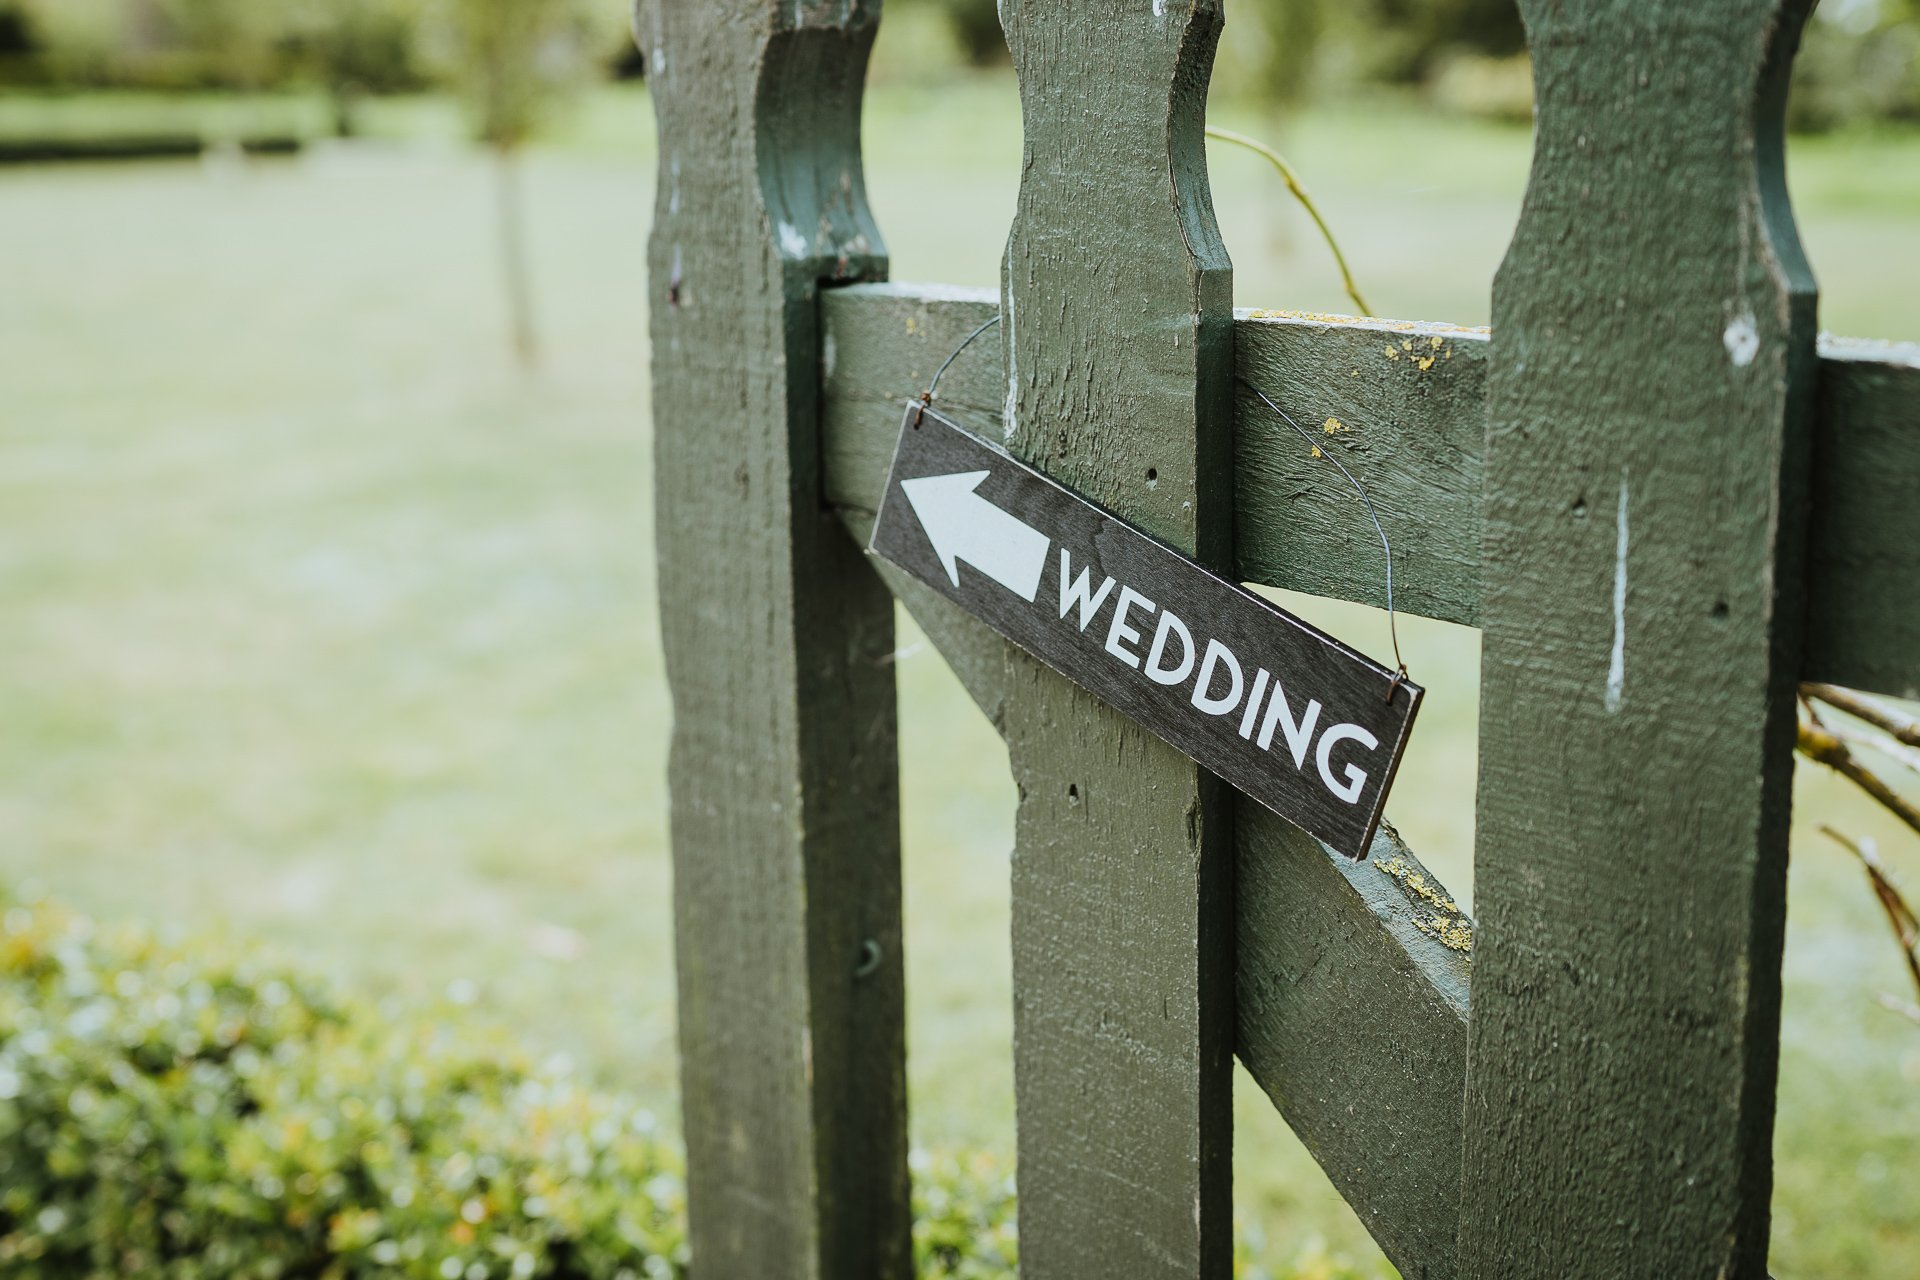 Wedding this way sign on green garden gate